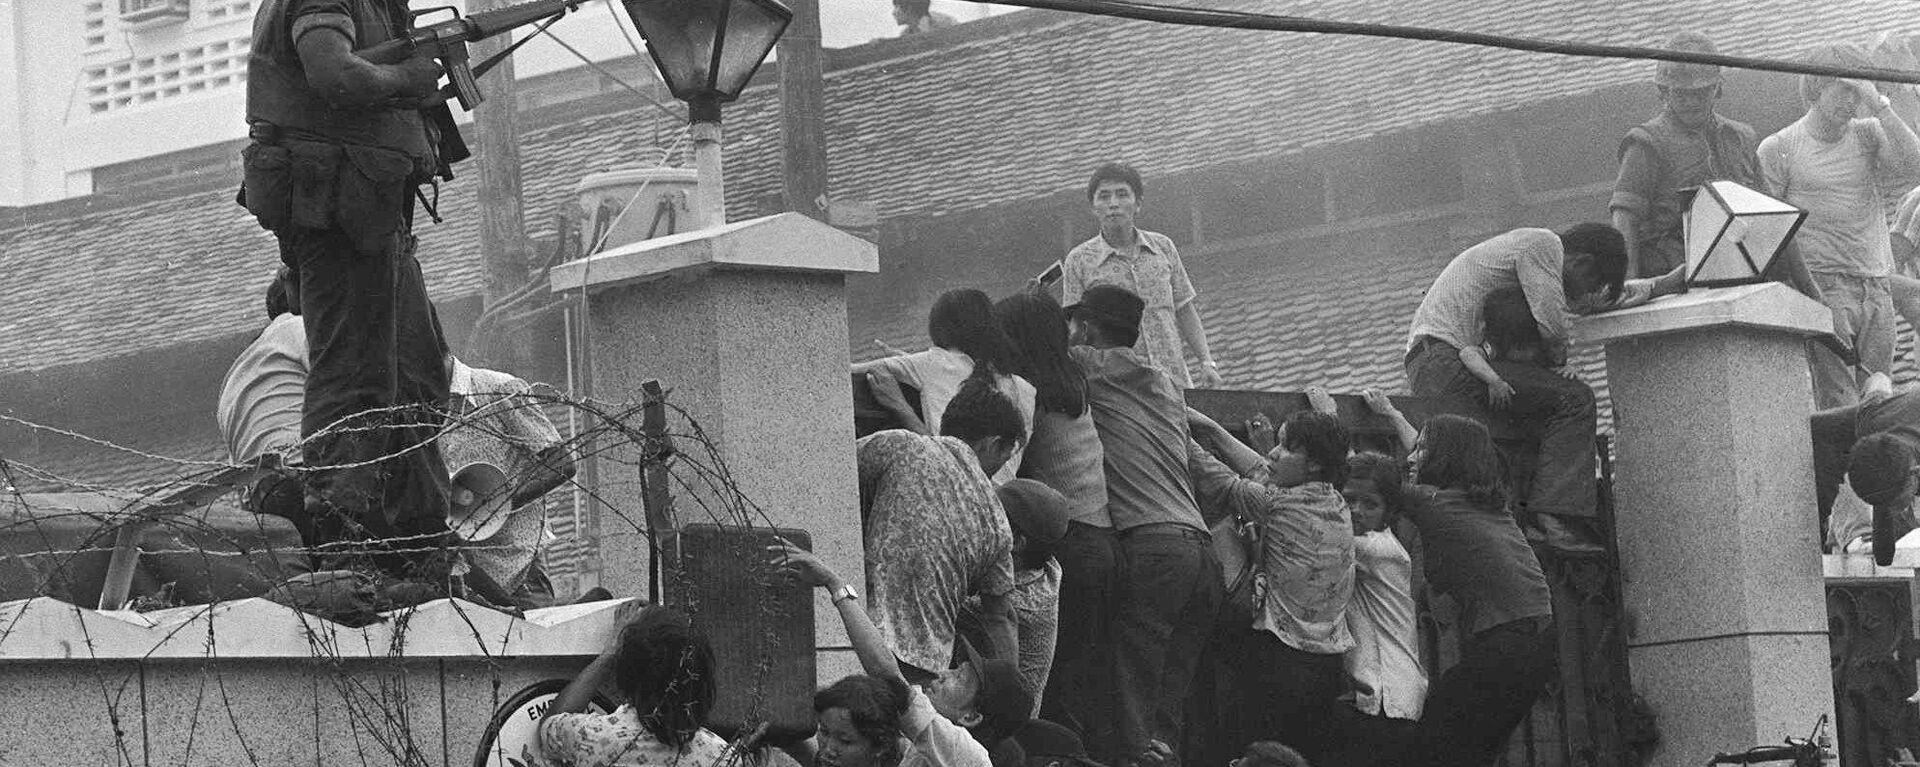 People clamber into the US embassy compound during the fall of Saigon in 1975 - Sputnik Việt Nam, 1920, 21.08.2021